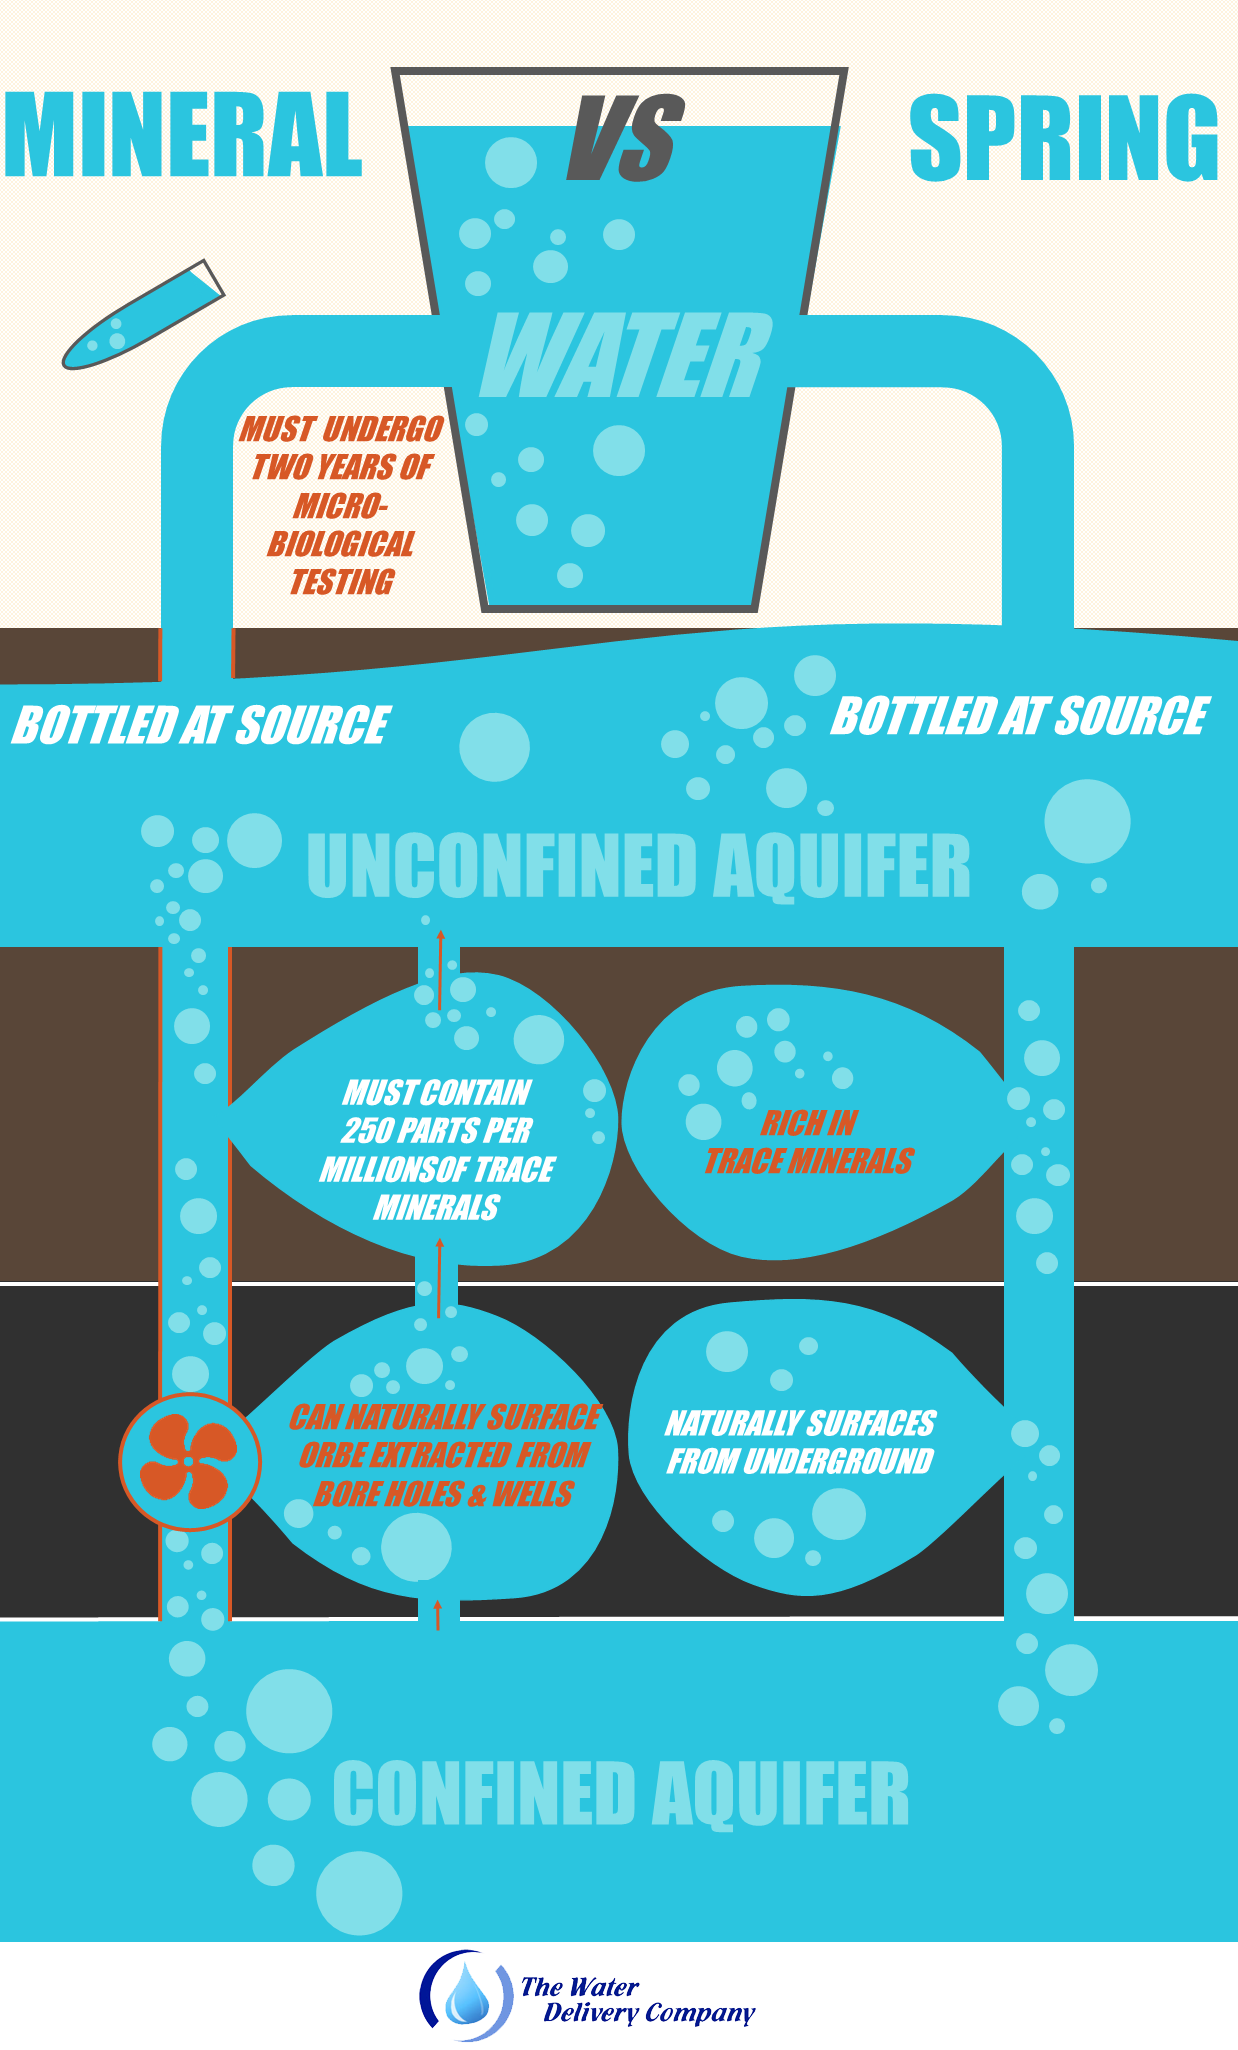 INFOGRAPHIC TWDC Spring vs Mineral Water Infgraphic Whats the difference between spring and mineral water?